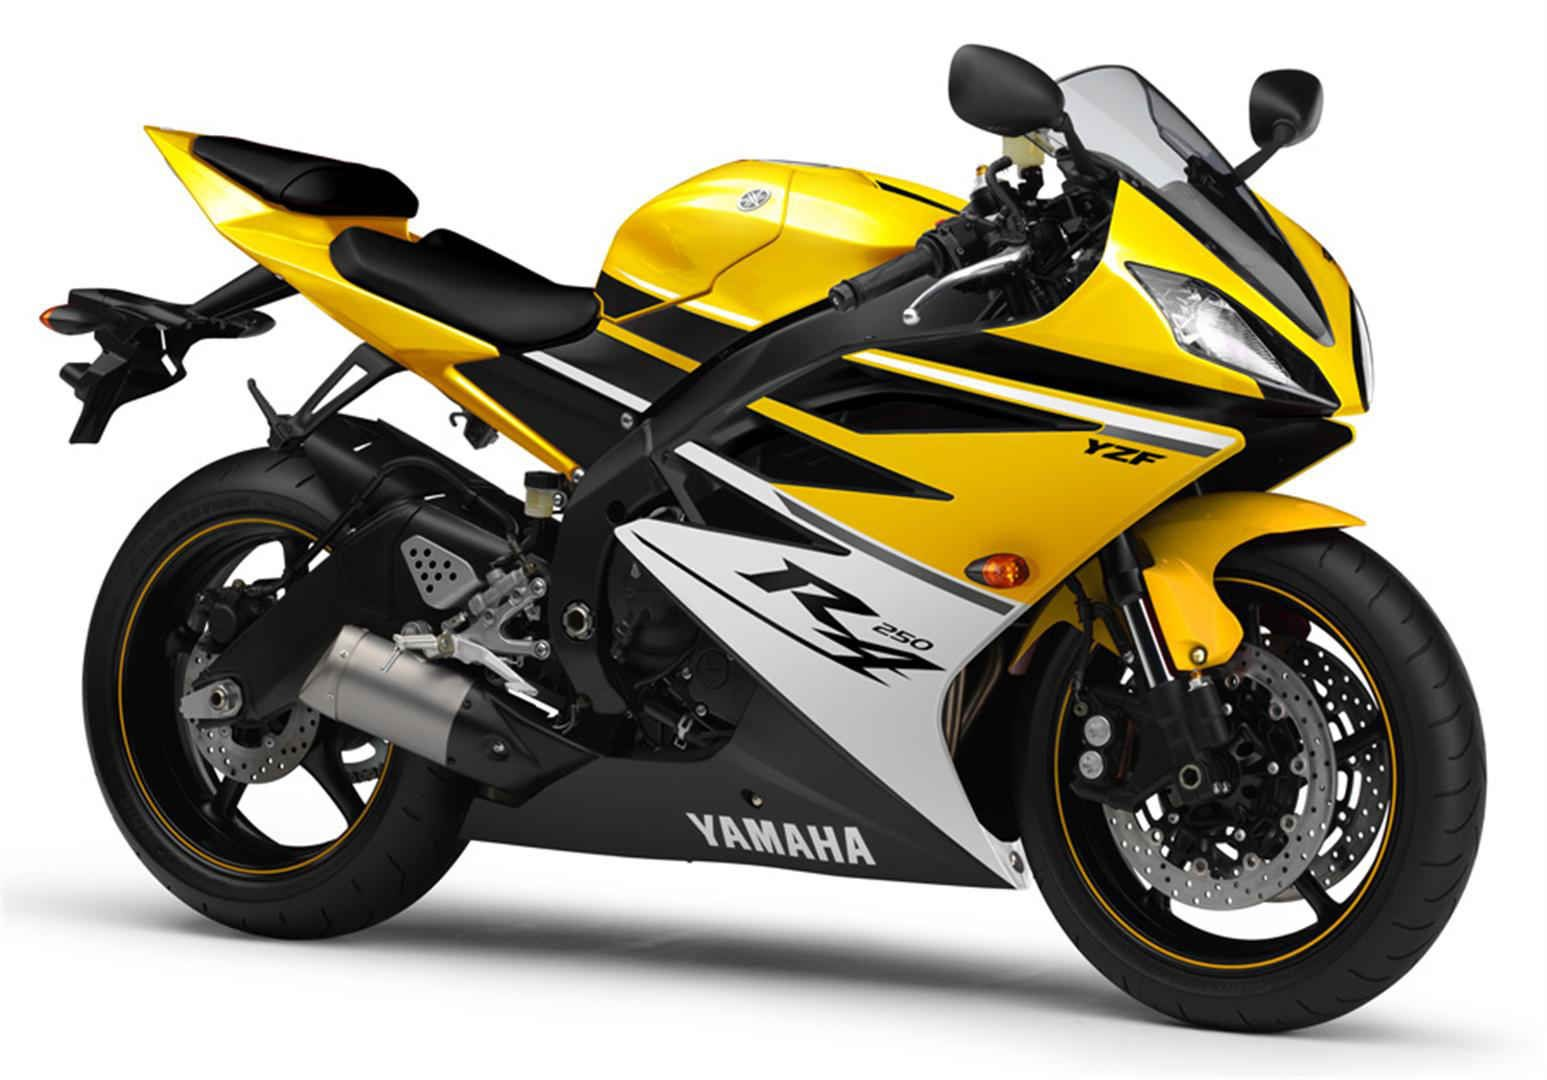 Yamaha yzf r25 2013 Price, Photos, Specifications